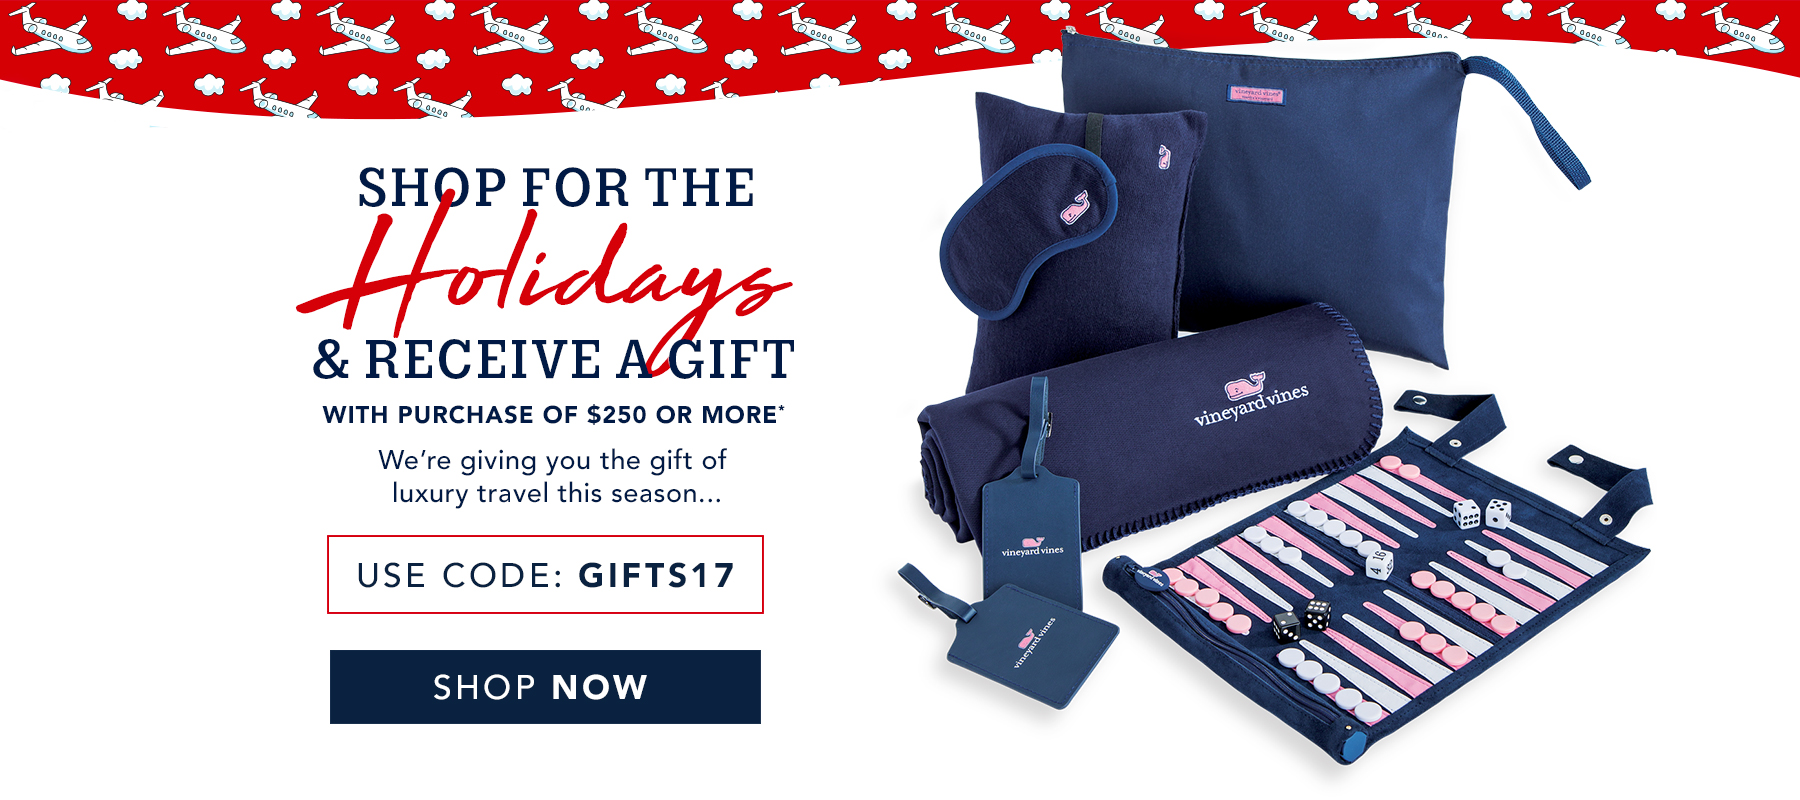 Shop for the holidays and recieve a gift with a purchase of $250 or more. Use code GIFTS2017. Shop now.